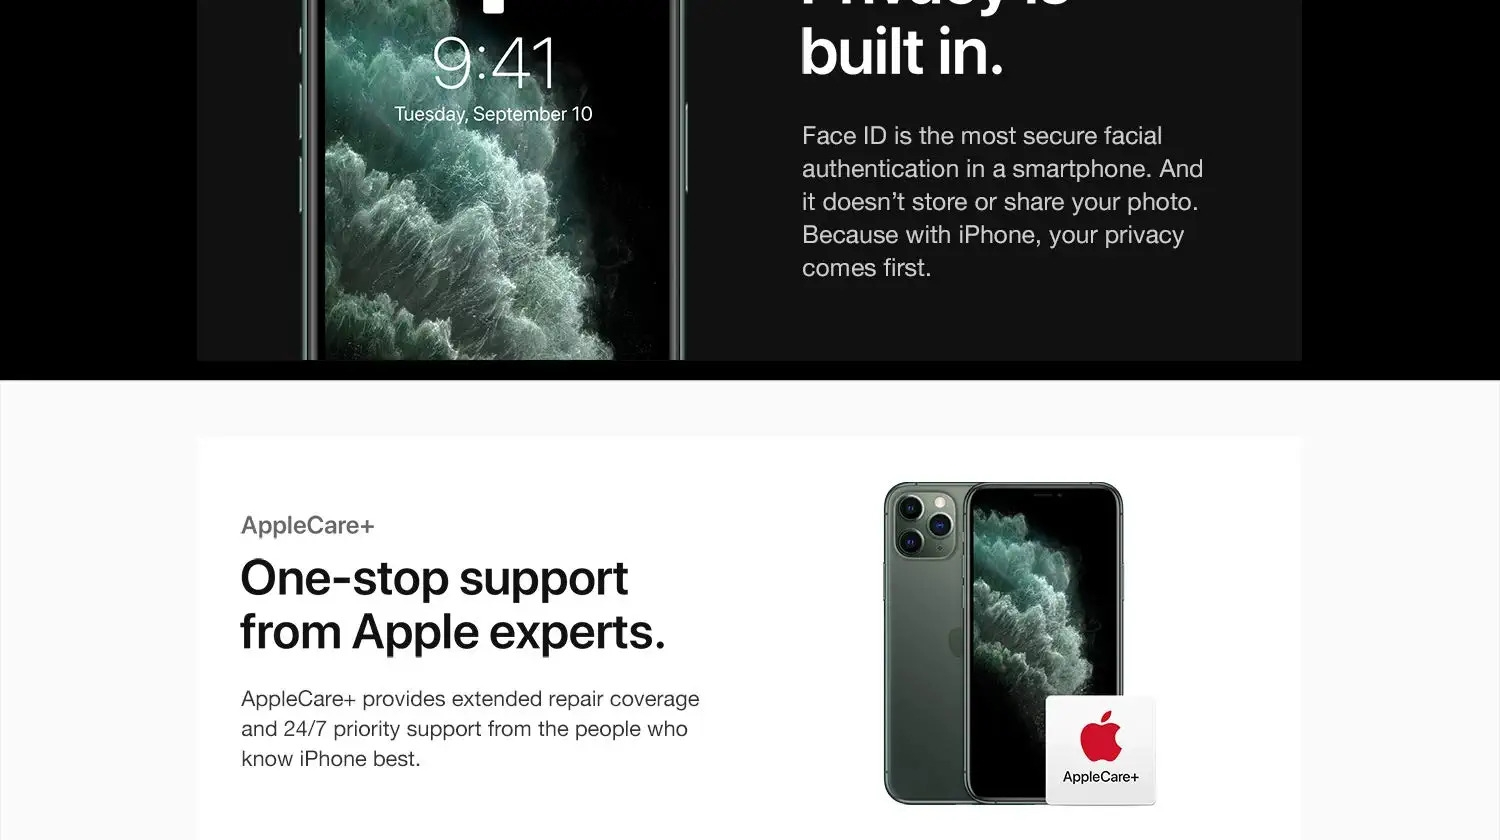 Privay is always built in. Face ID. AppleCare+  One-stop support from Apple experts. AppleCare+ provides extended repair coverage and 24/7 priority support from the people who know iPhone best.